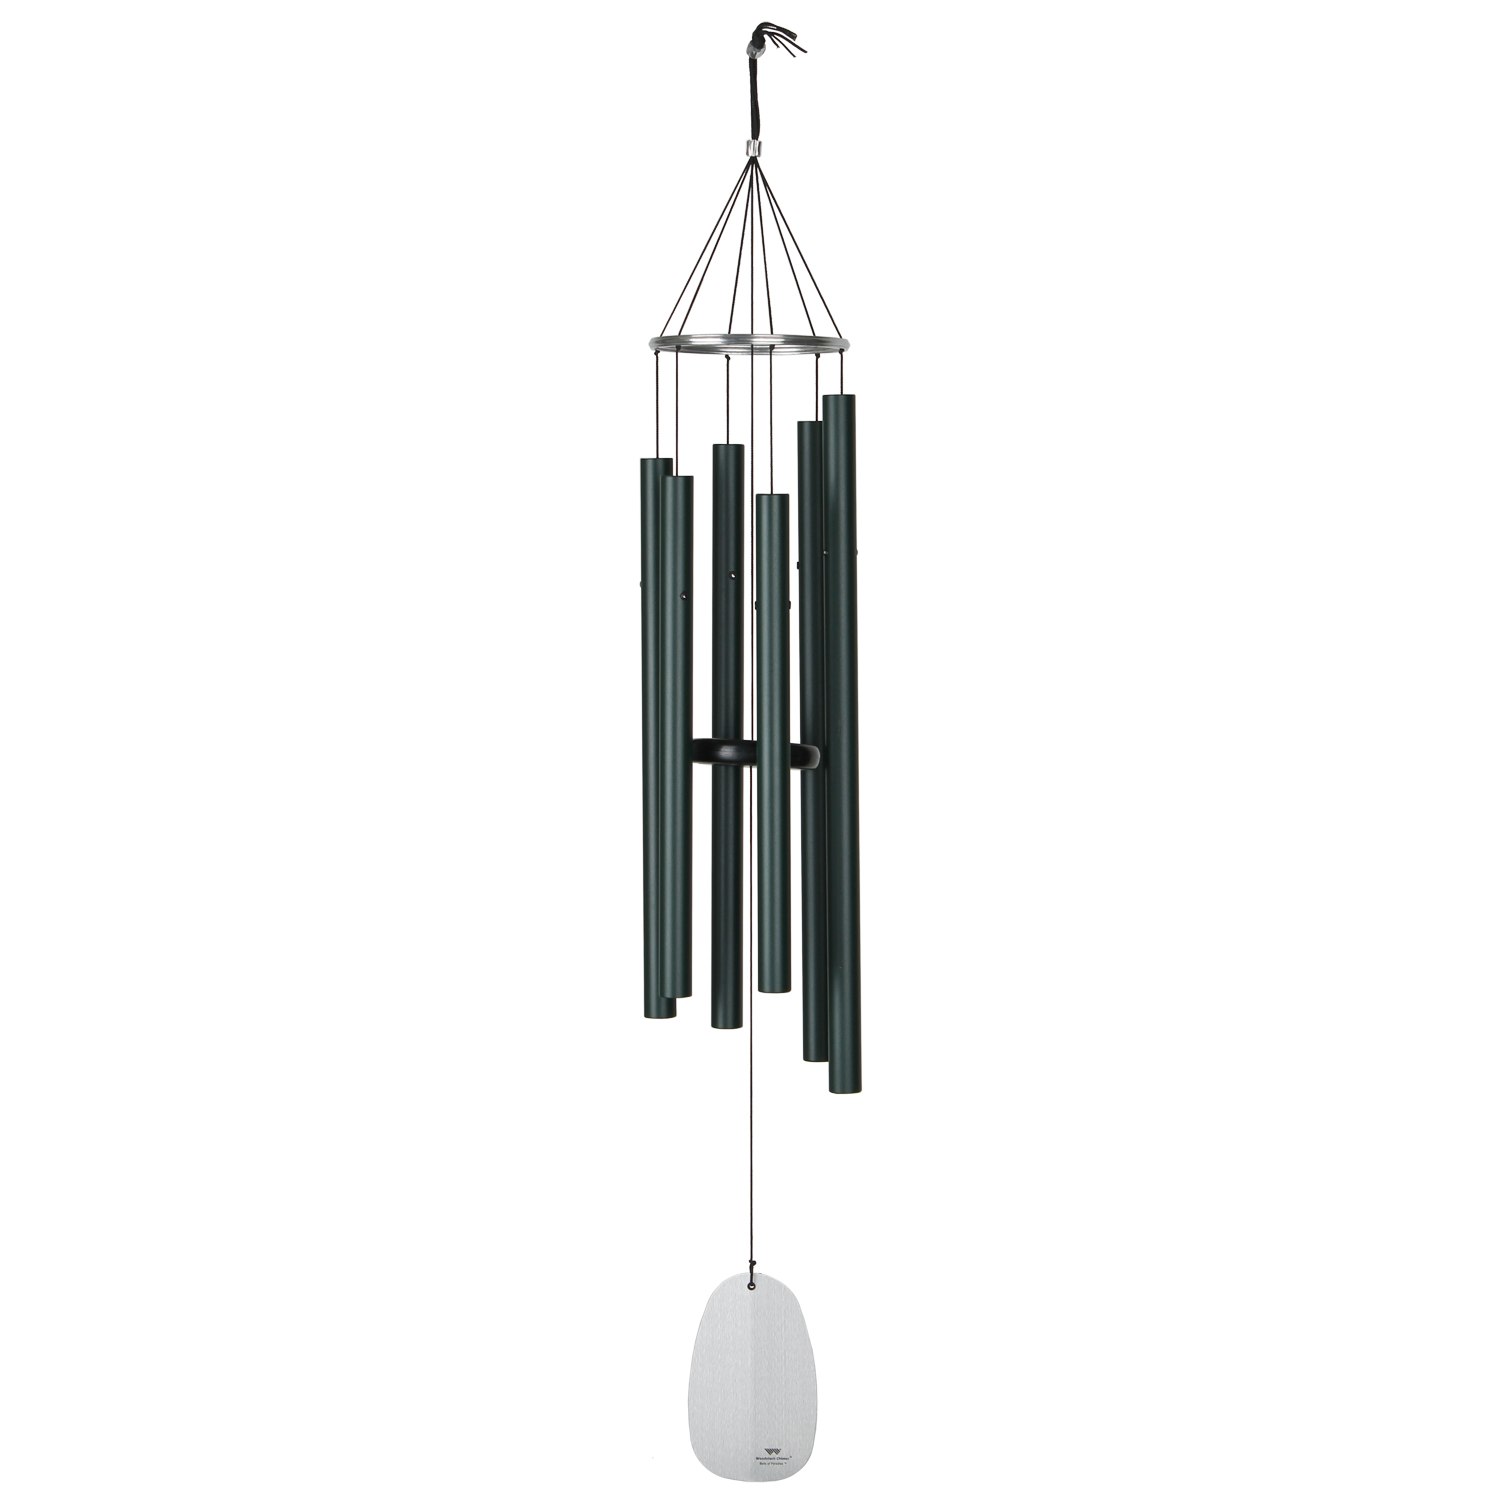 Woodstock Bells of Paradise Large Rainforest Green Wind Chime by Woodstock Percussion Inc.